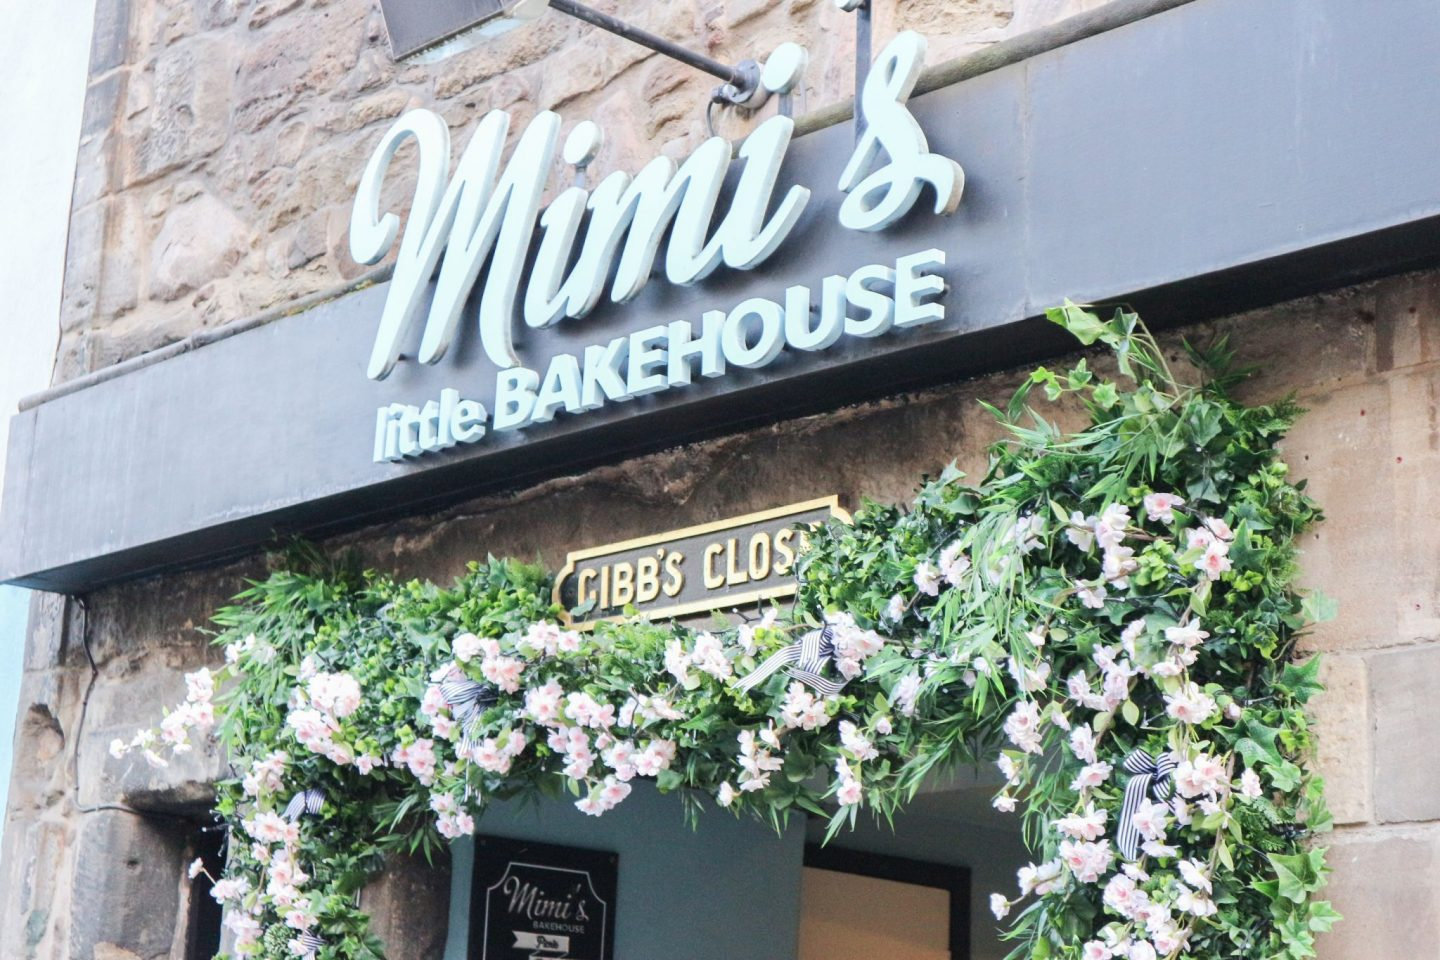 mimi's little bakehouse edinburgh